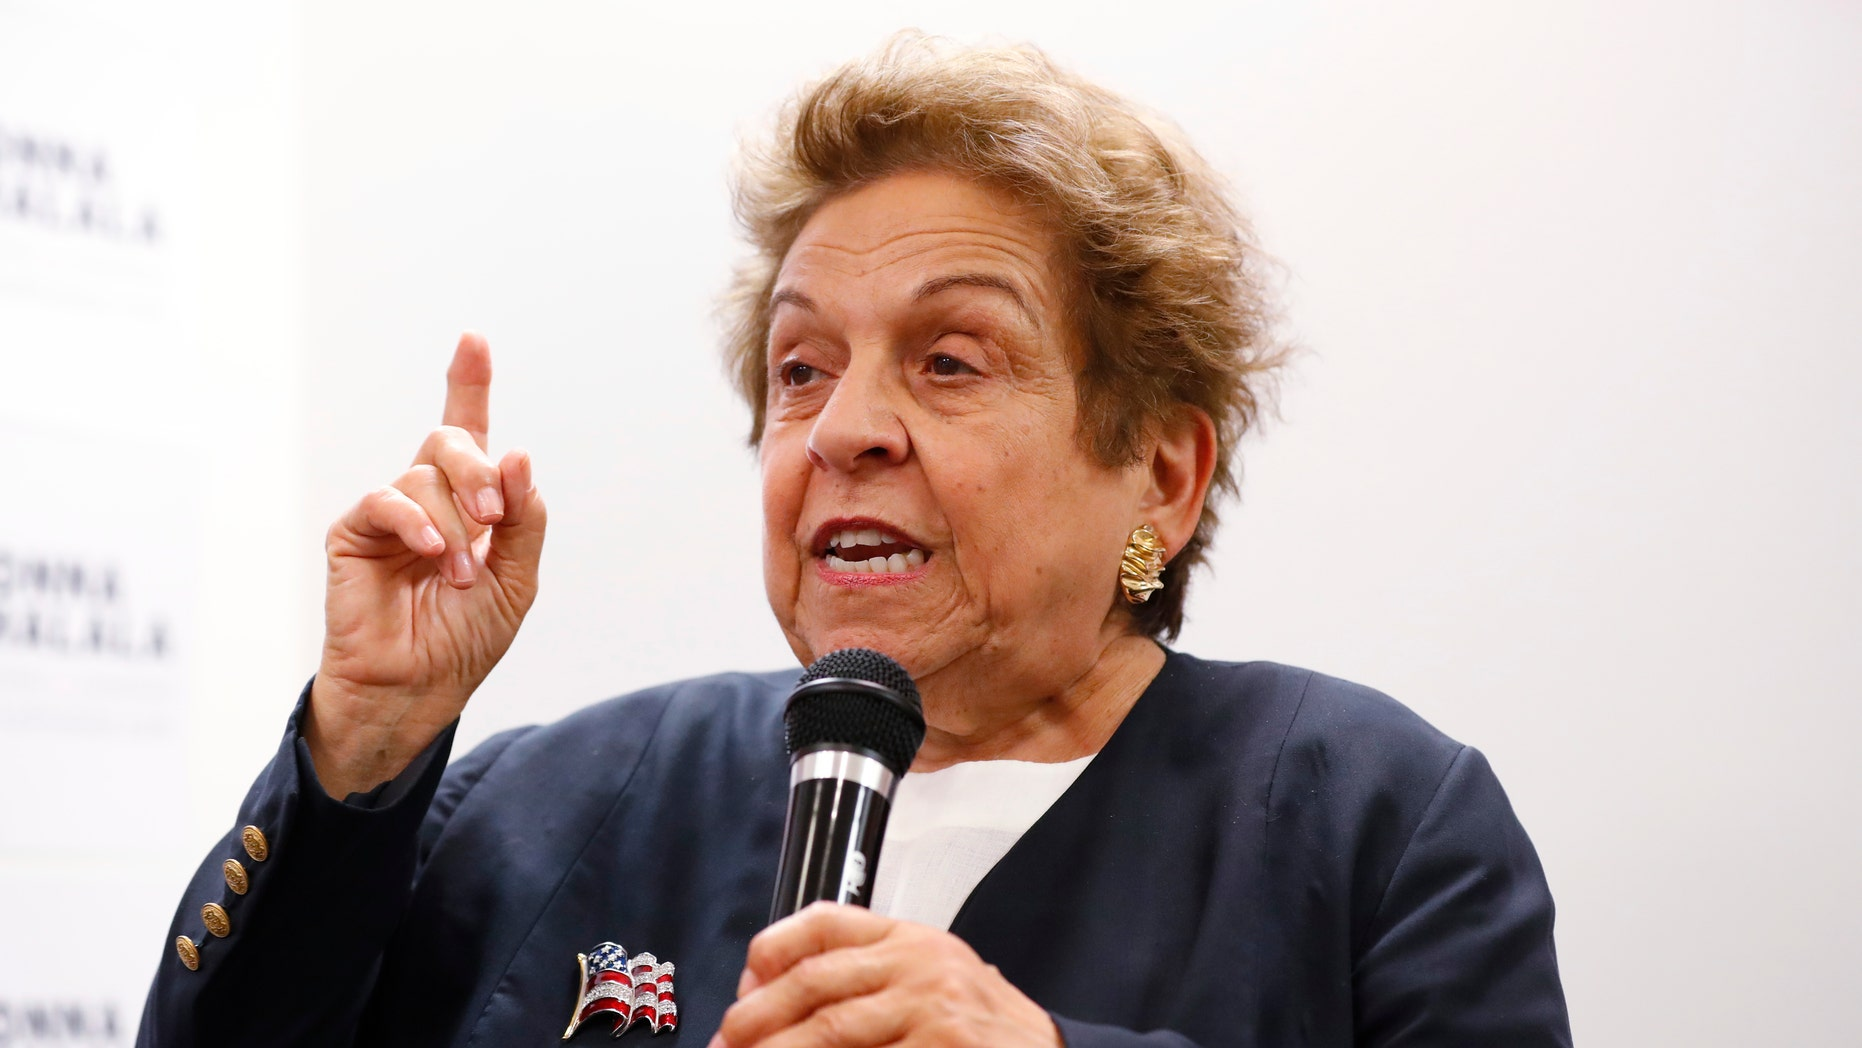 Democratic House nominee Donna Shalala came under fire this week after her campaign was initially planning to host an event with Rep. Barbara Lee – who has praised former Cuban dictator Fidel Castro.